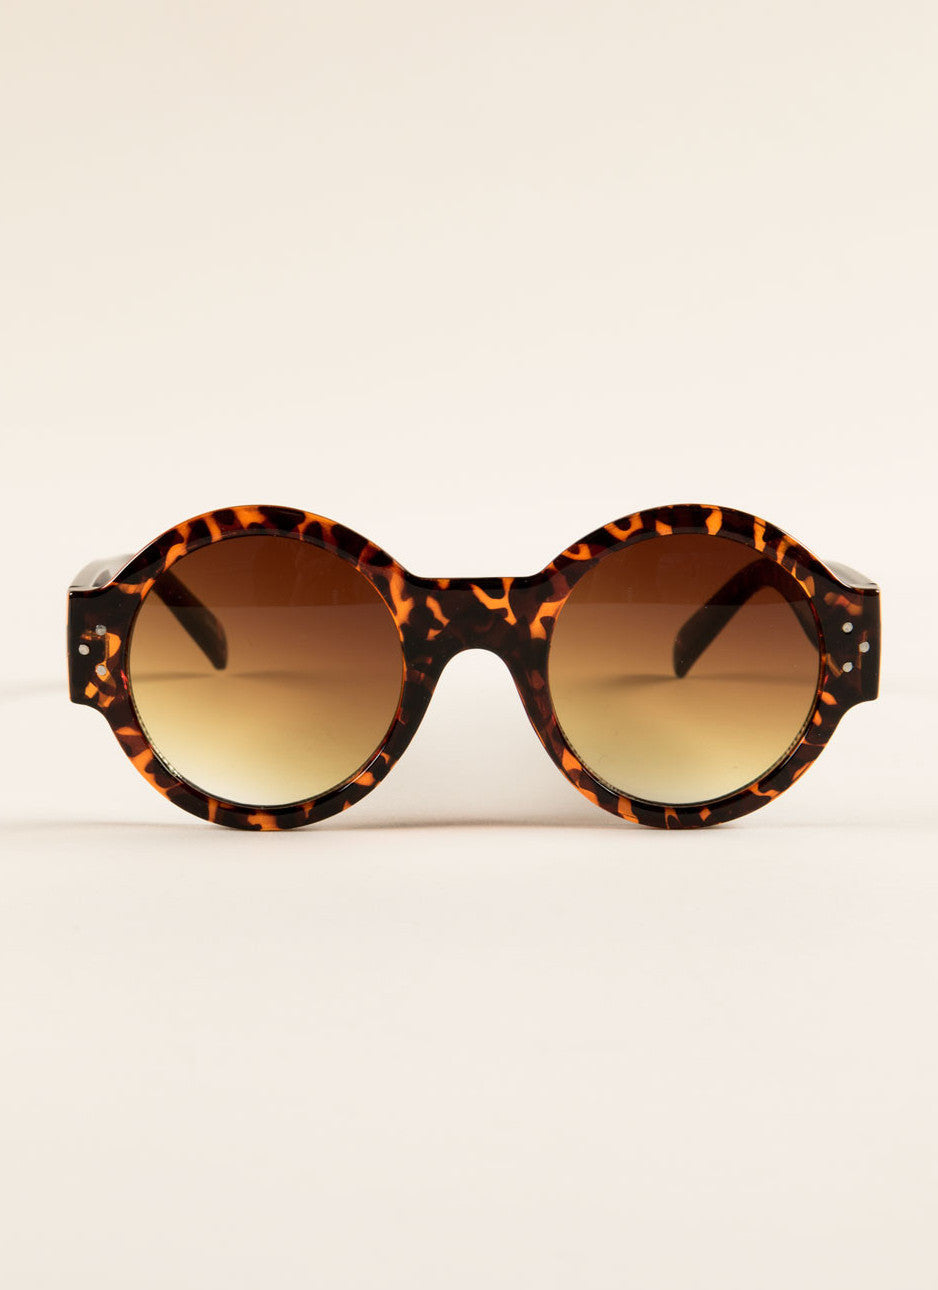 Retro Round Sunglasses , Accessories - Fashion Trend LA, Fashion Trend LA  - 2